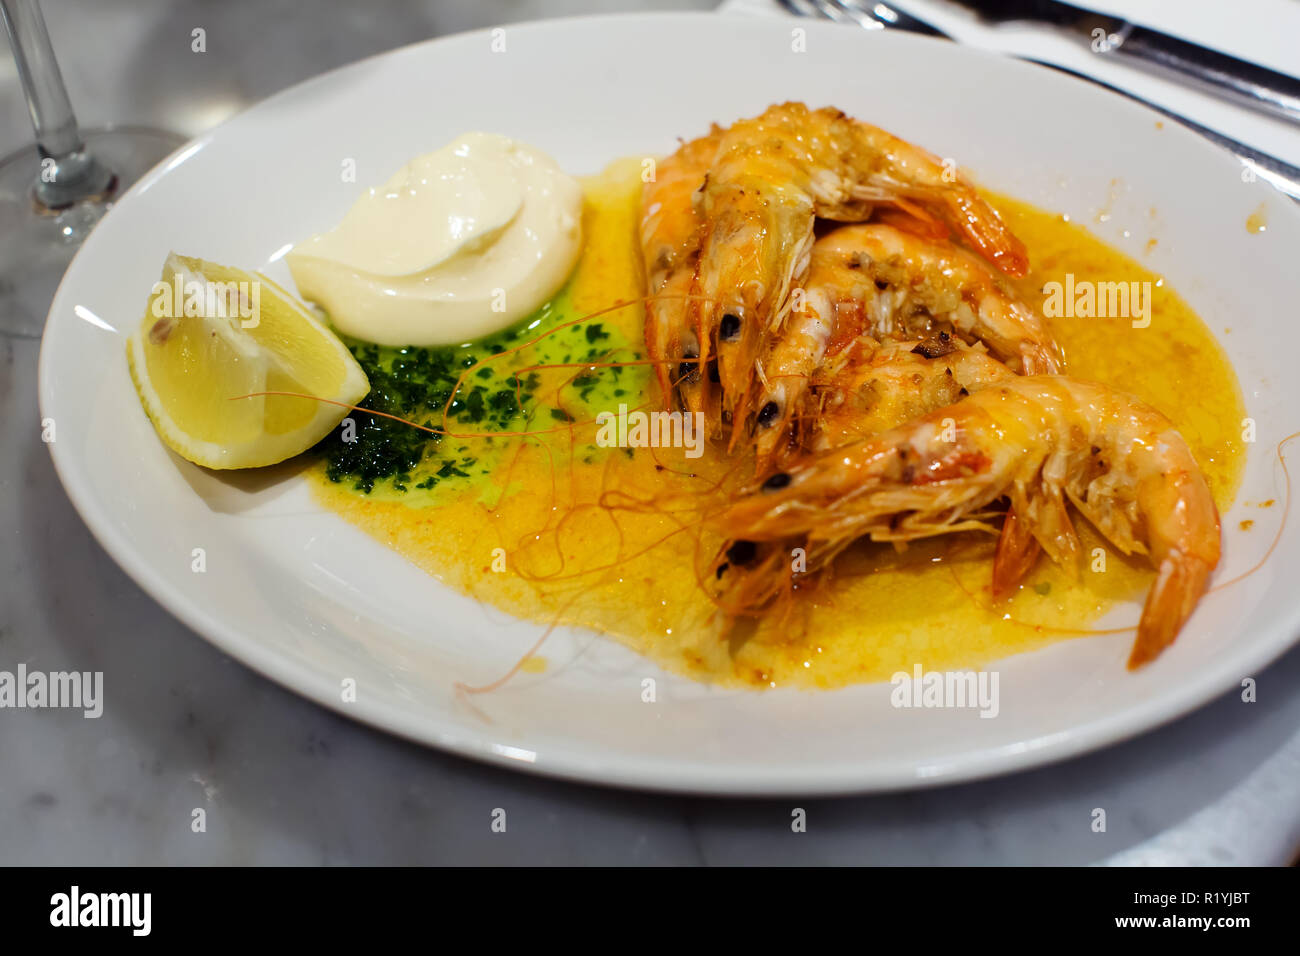 Nicely served prawns with lemon and souse in cafe - Stock Image